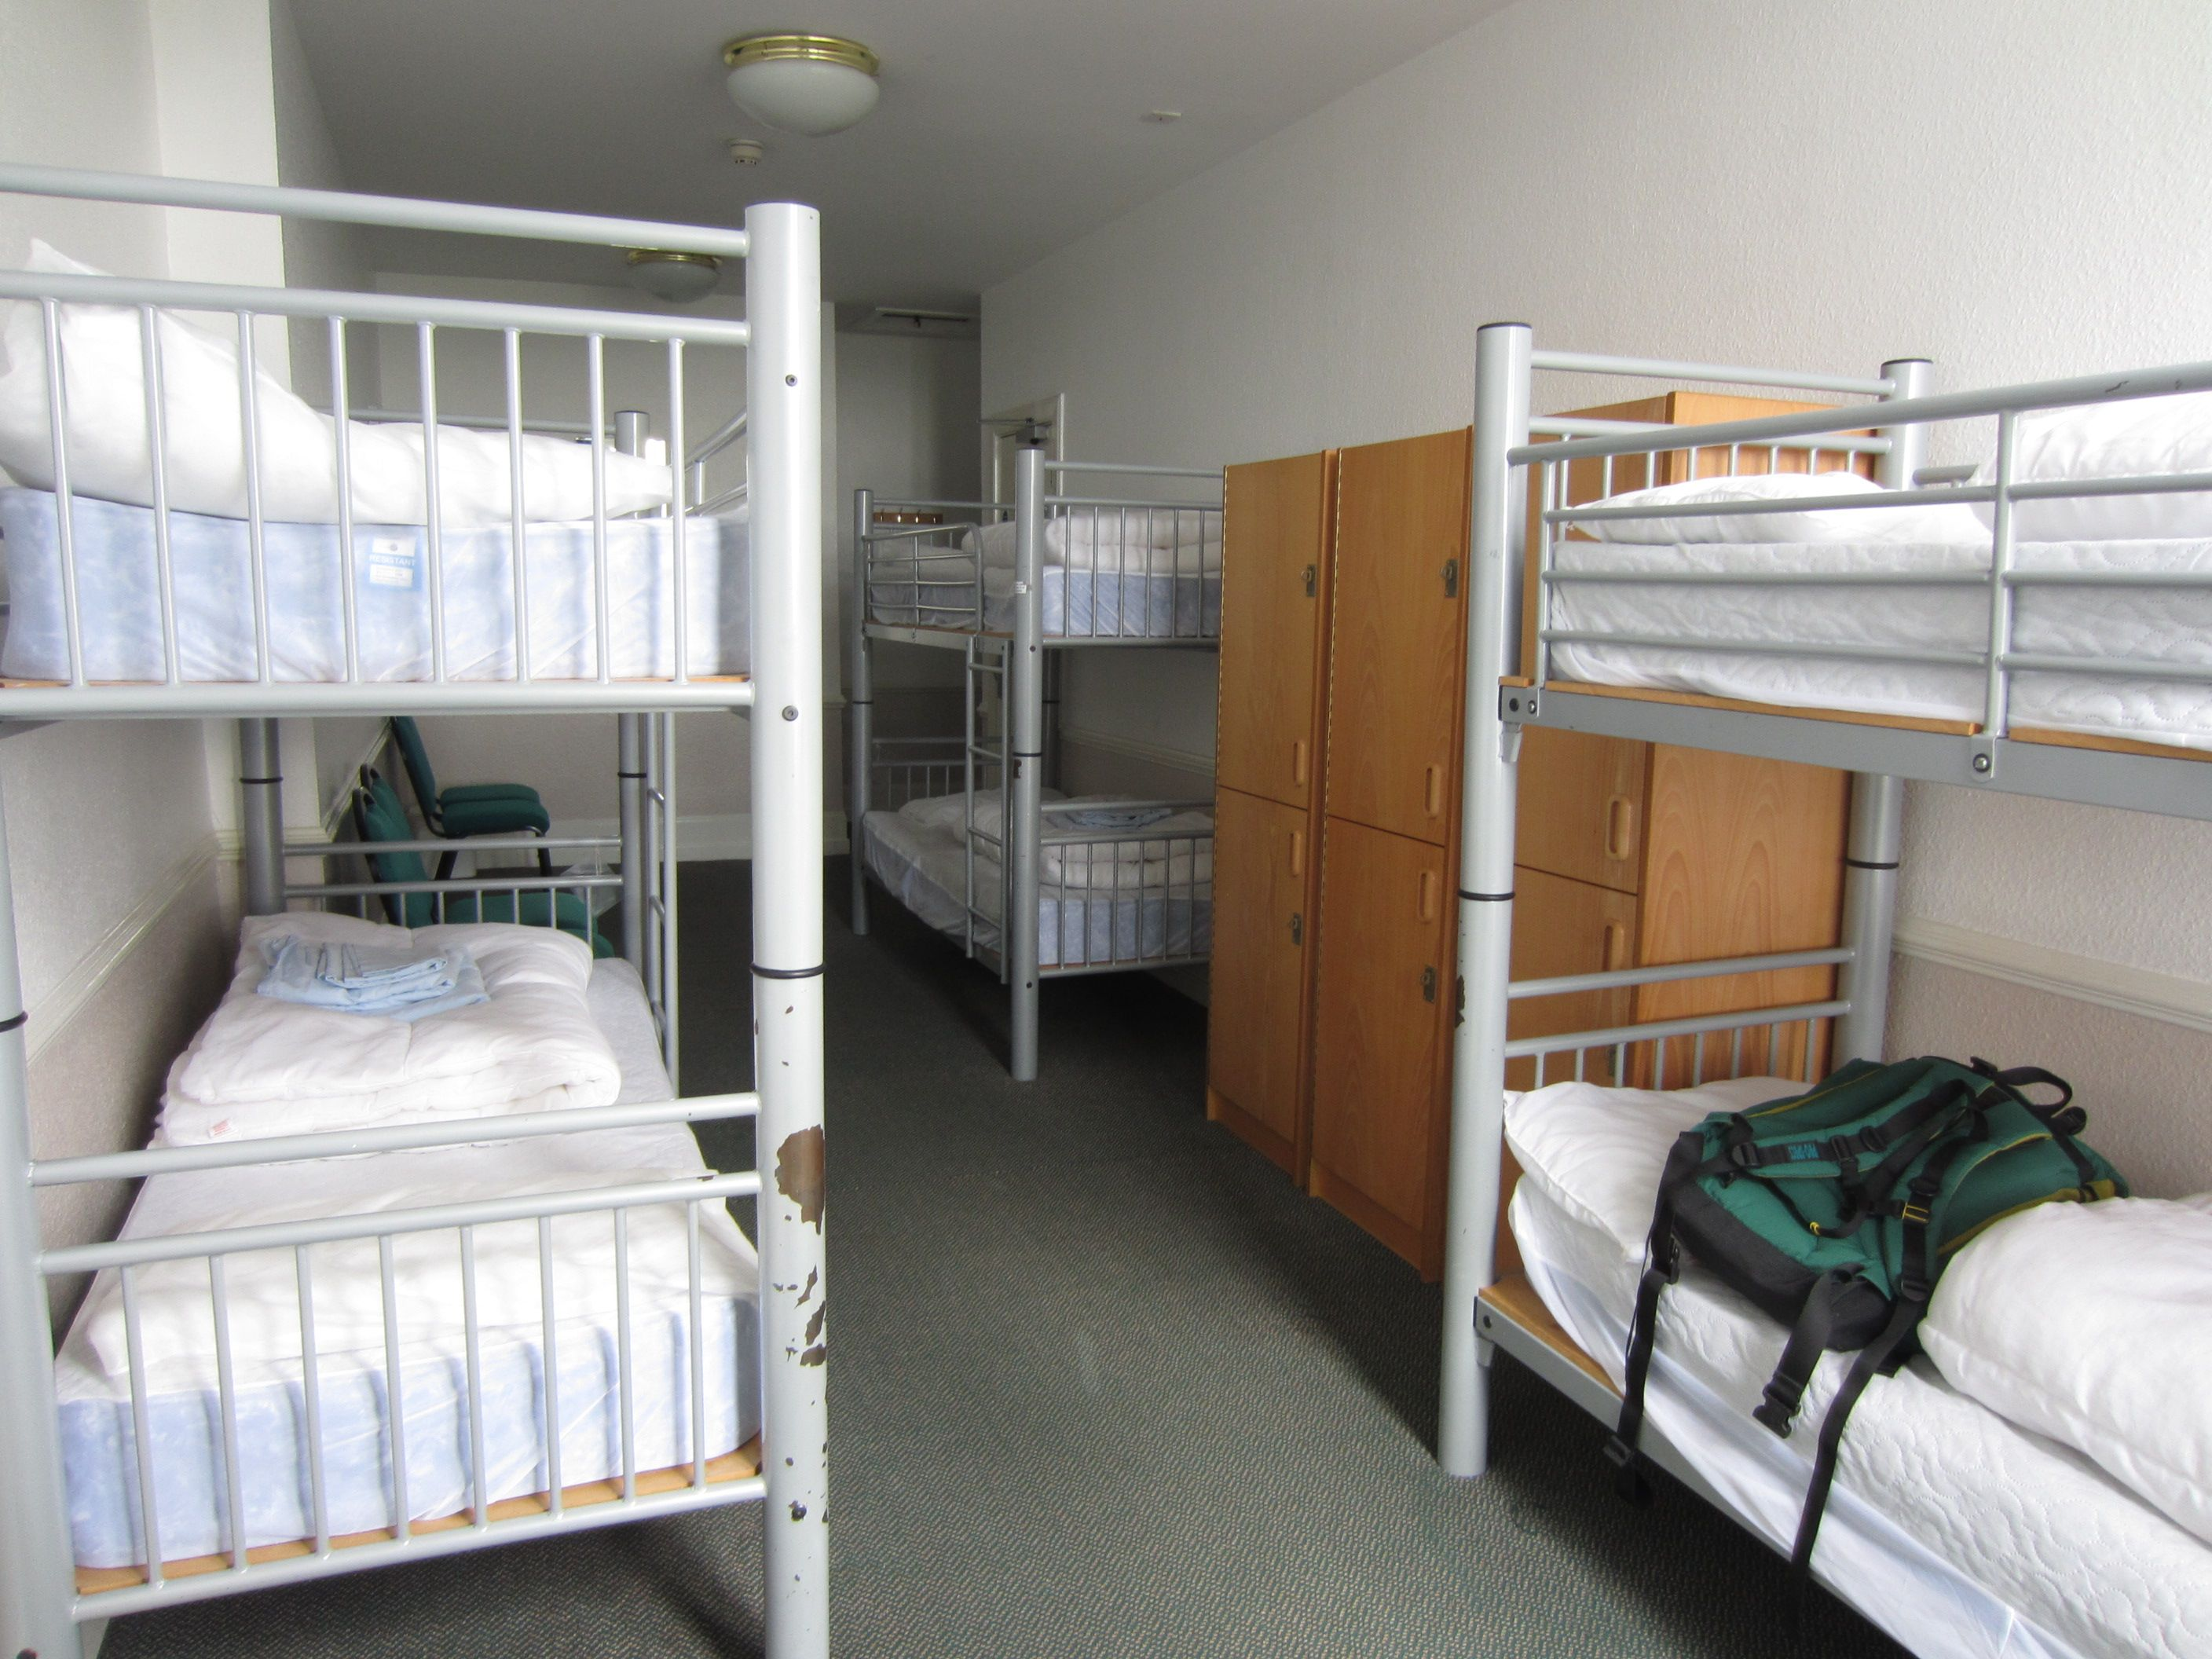 6 bed female dorm with wooden lockers glasgow youth hostel bunk rh pinterest com